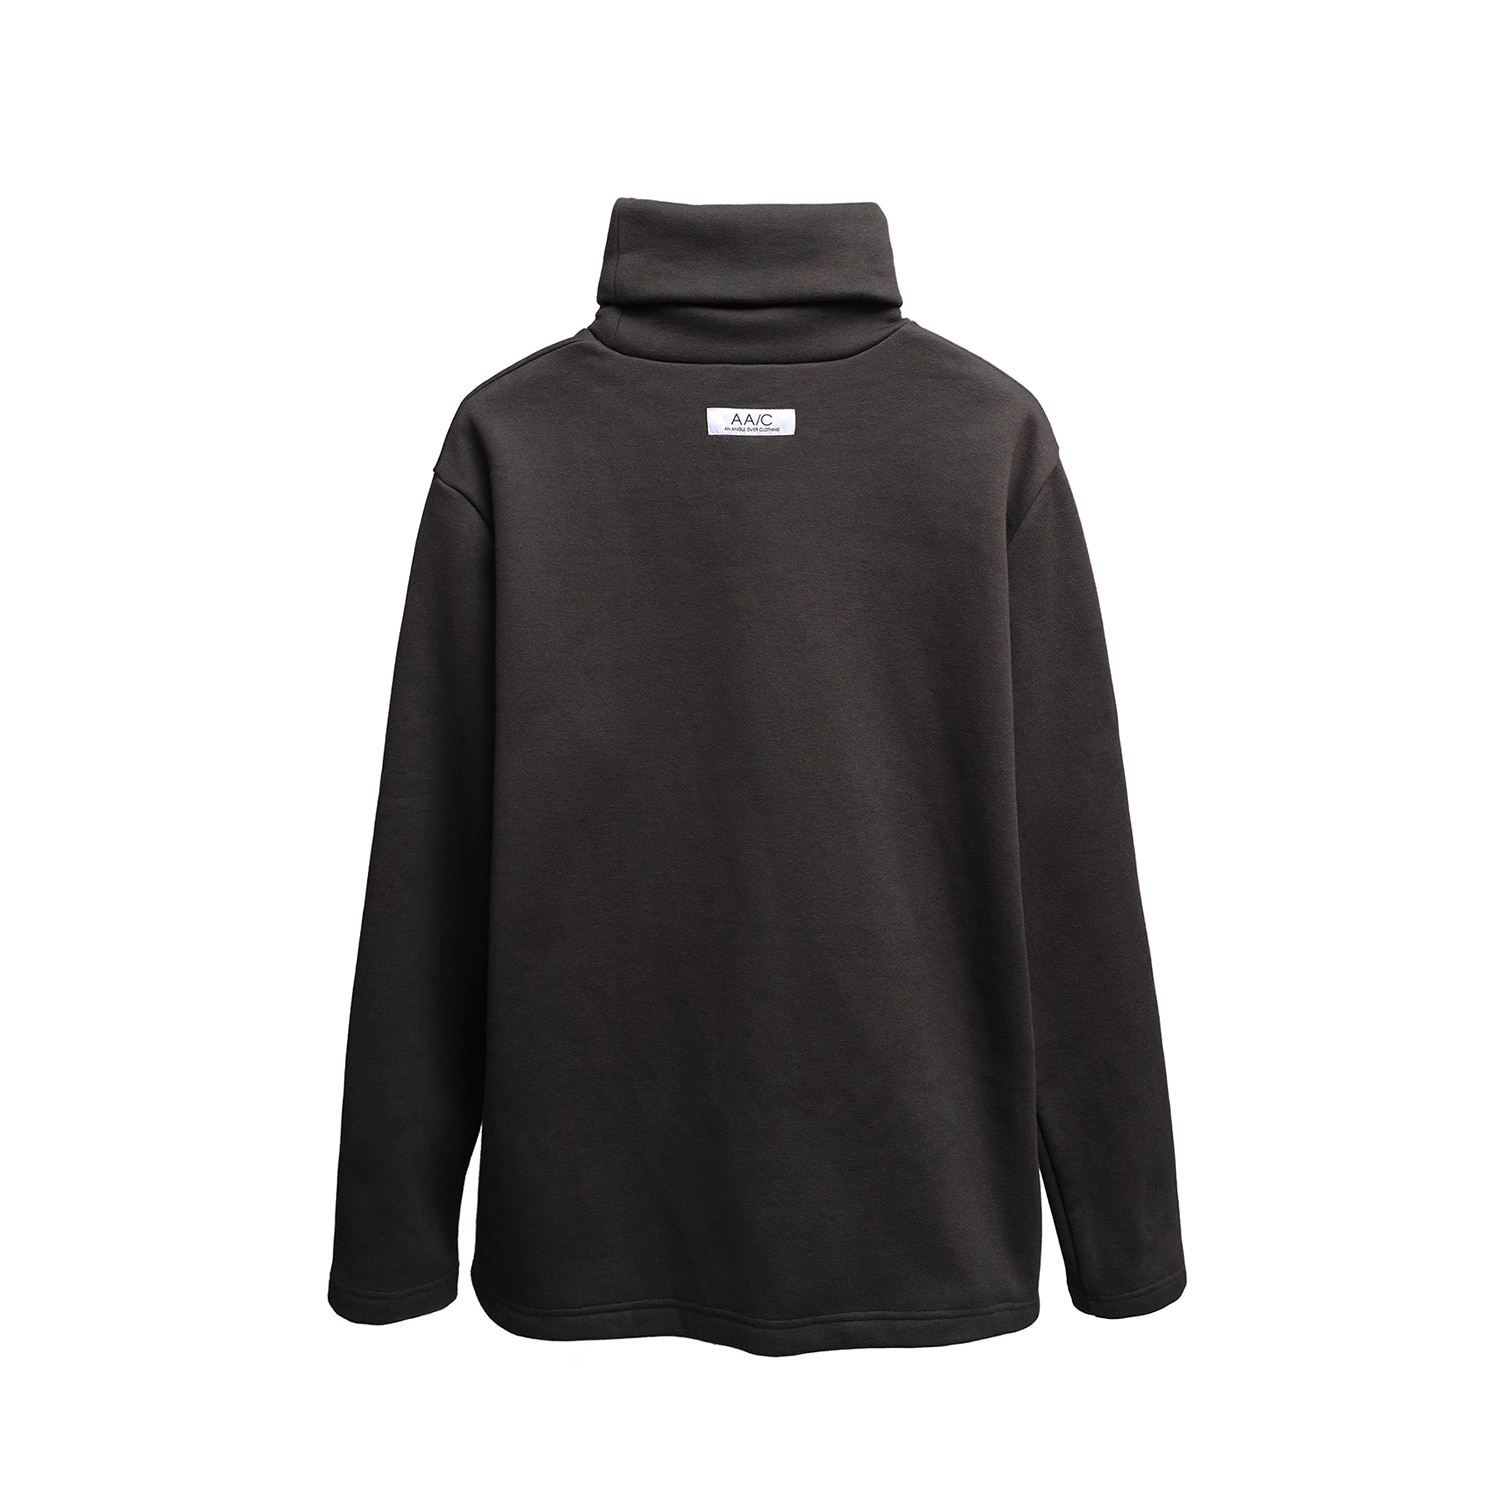 Zippered Turtleneck (charcoal)